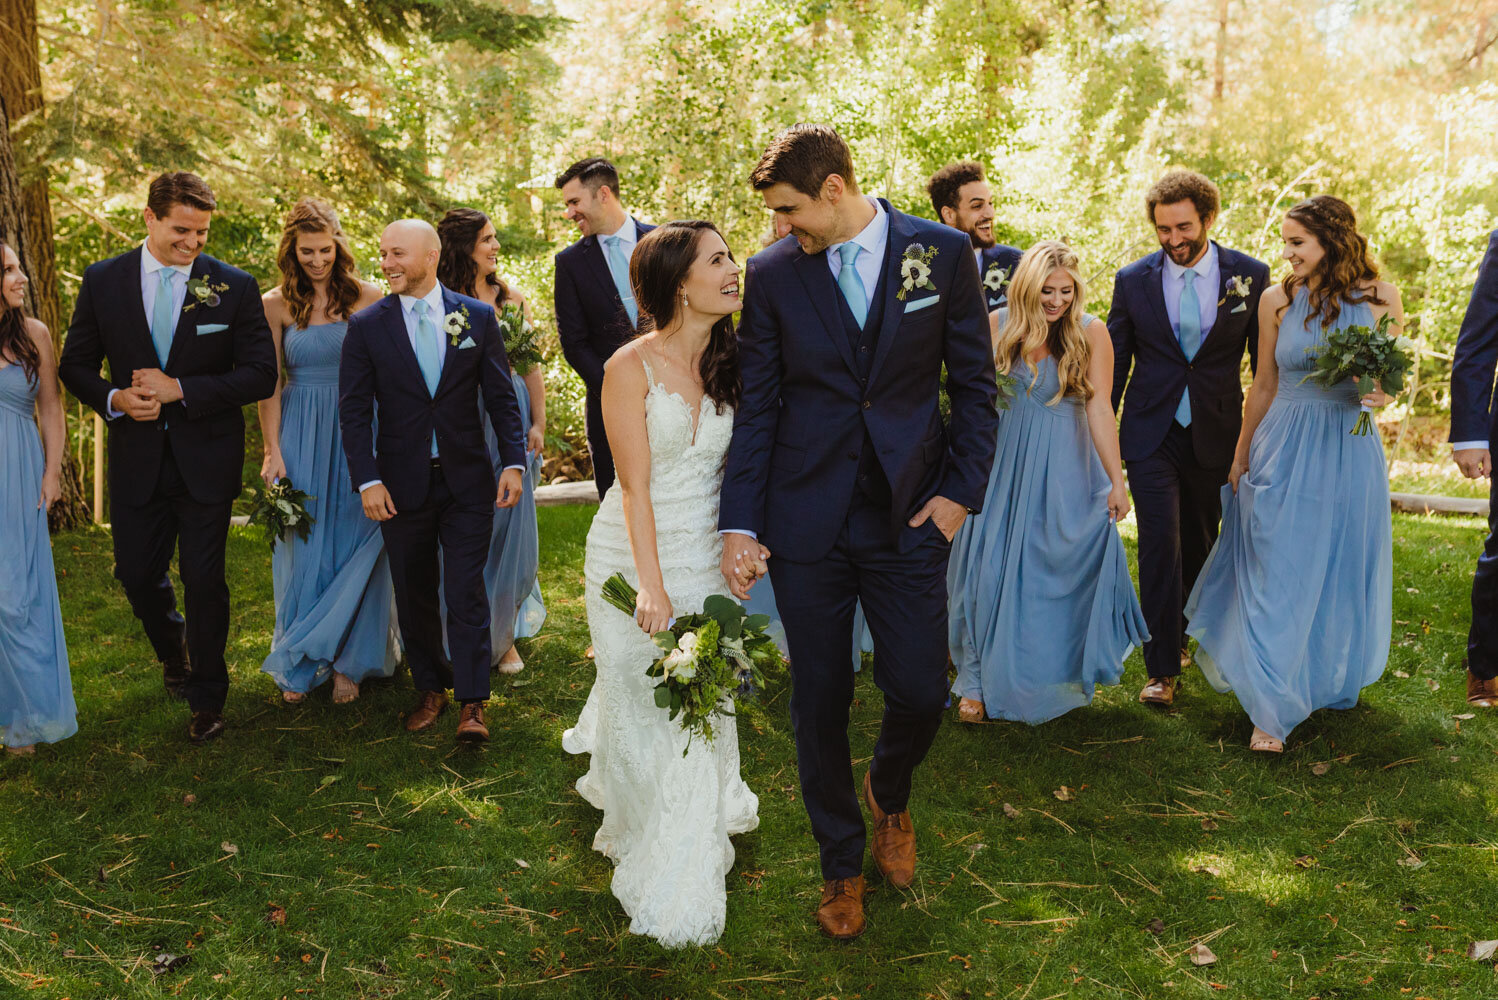 The Chateau Incline Village Wedding, bridal party photo with everyone in blue